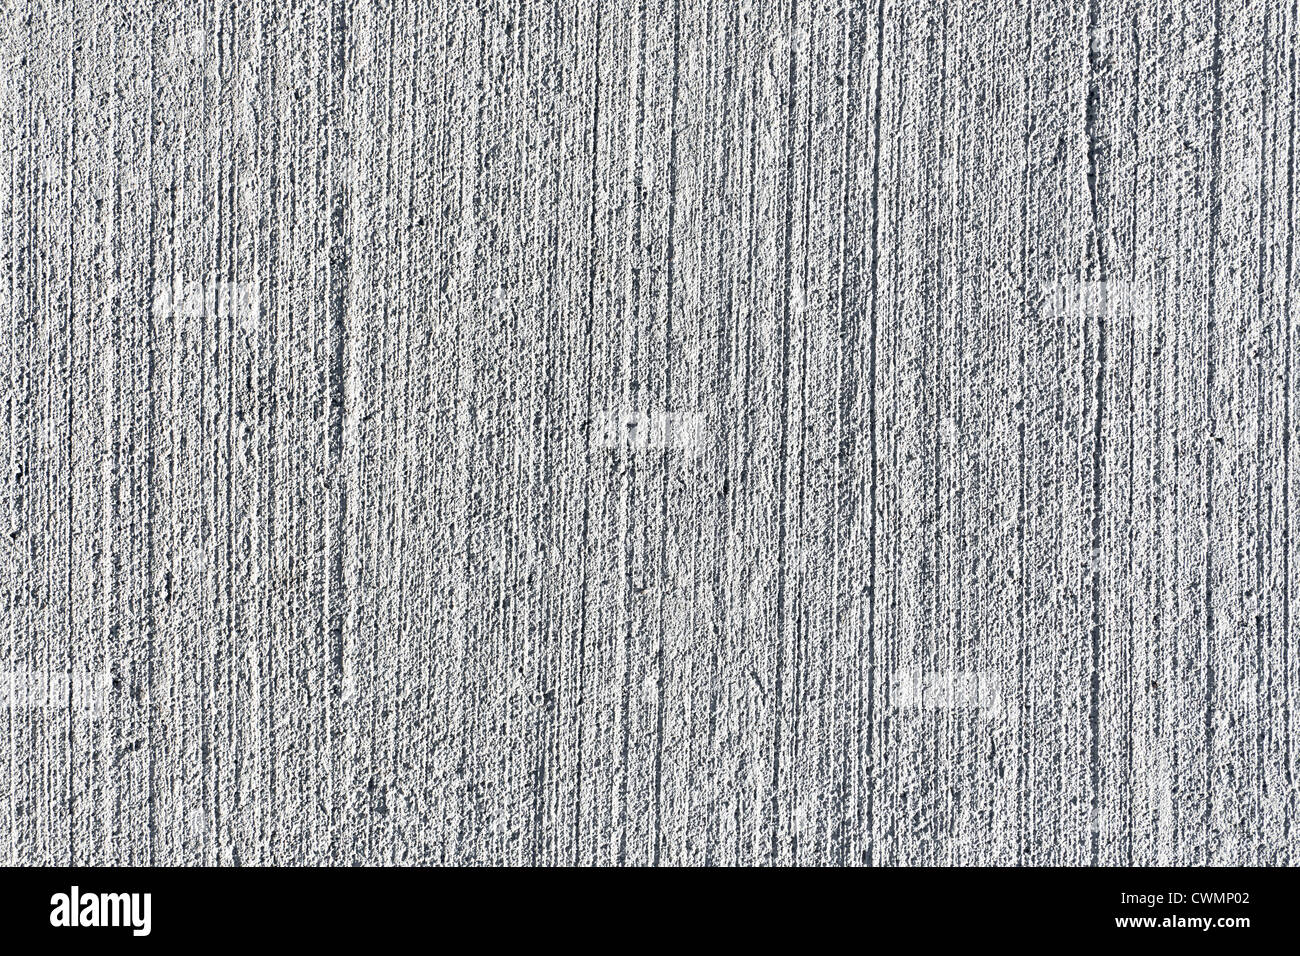 Background Of Concrete With Textured Brushed Finish Stock